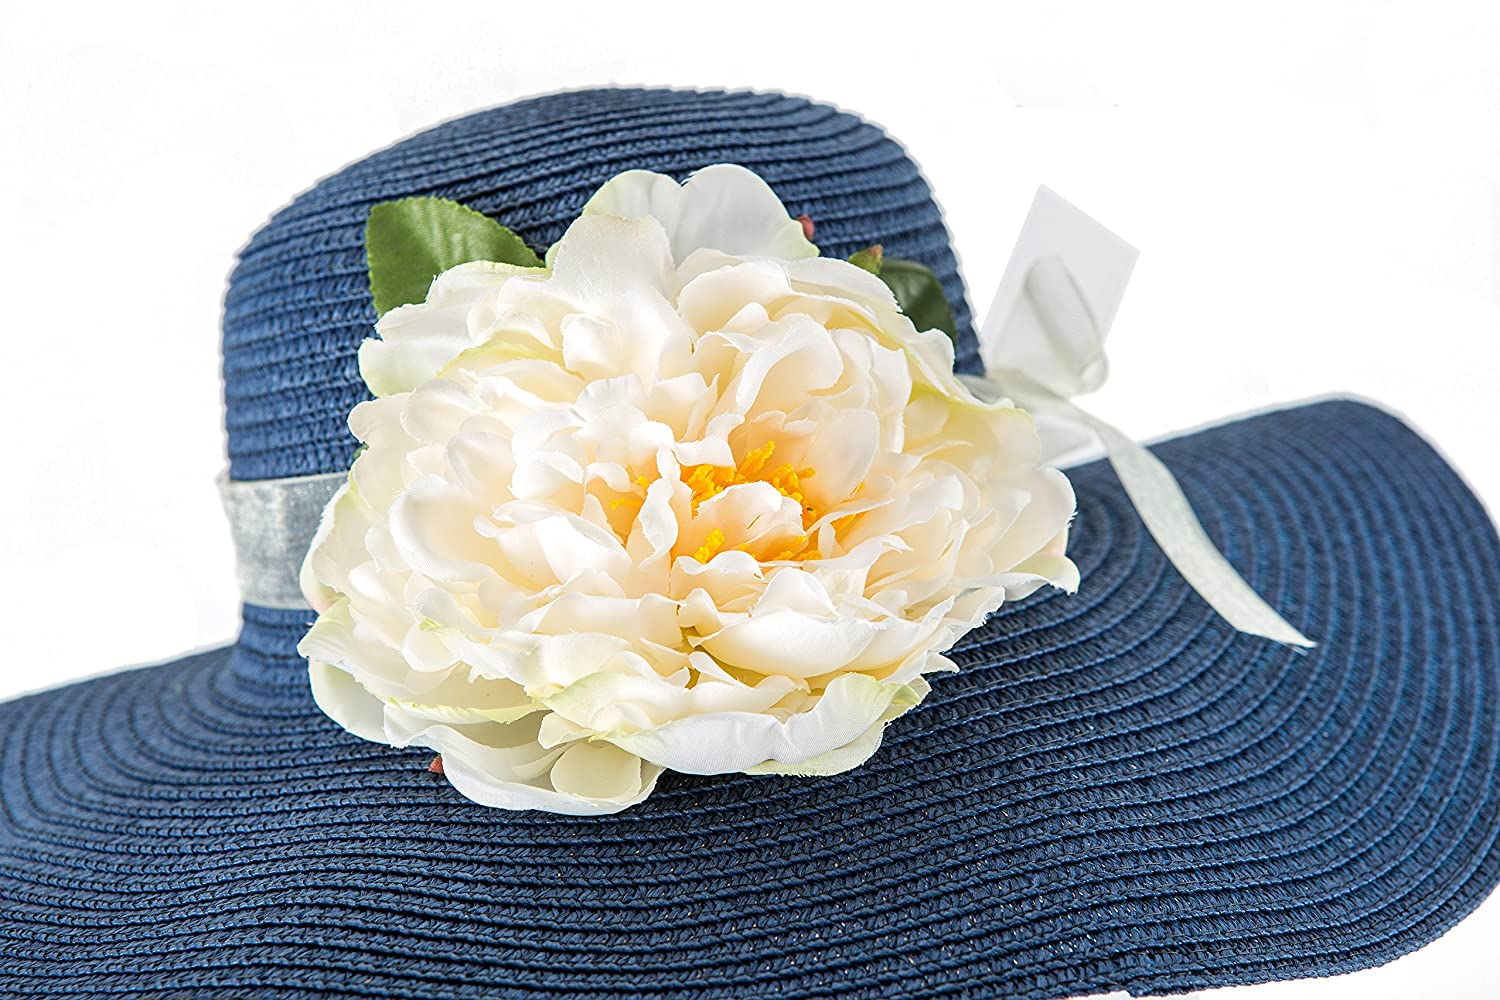 Tropic Beauty - Floppy Hat with Big White Peony Flower Jean Blue Bow  Kentucky Derby Race Church Wedding Beach Garden Party at Amazon Women s  Clothing store  24240535f932